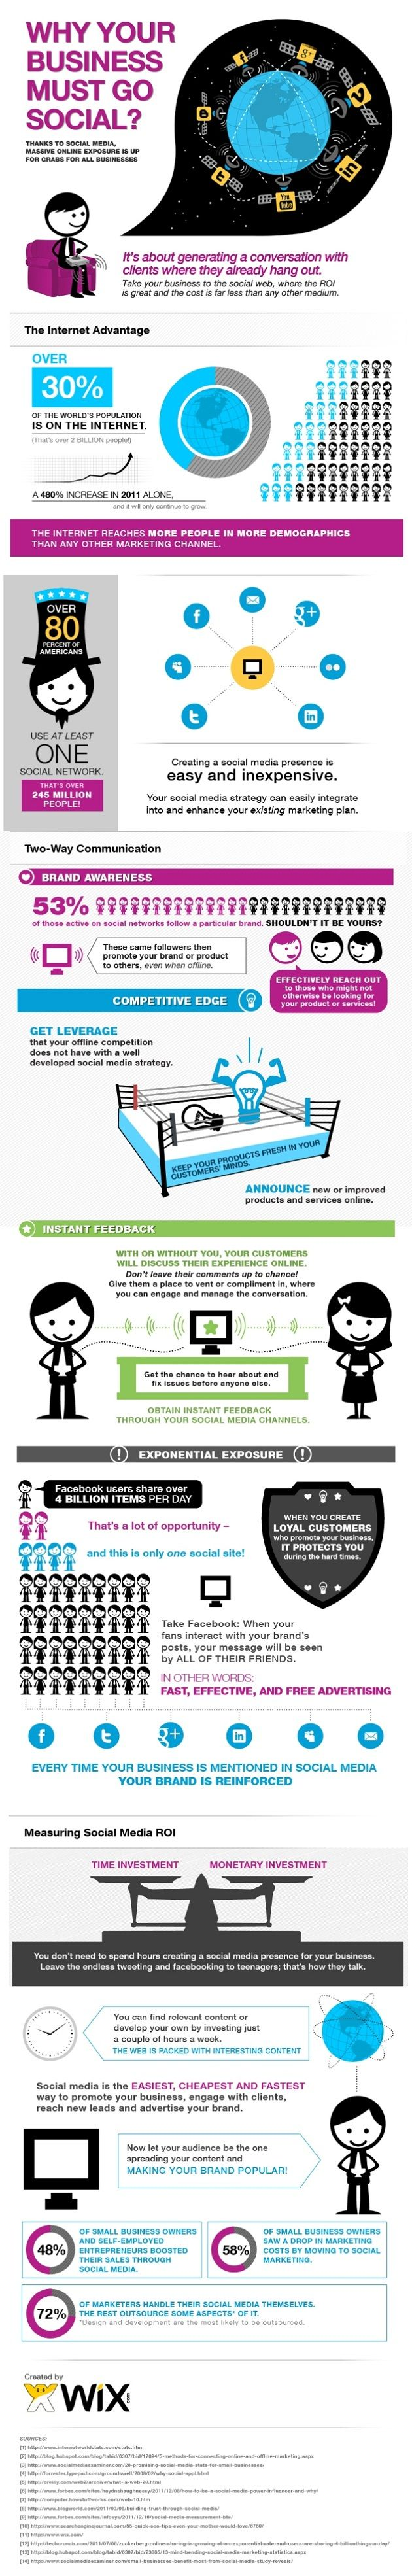 Why Your Business Must Go Social... What are you waiting for?!?!